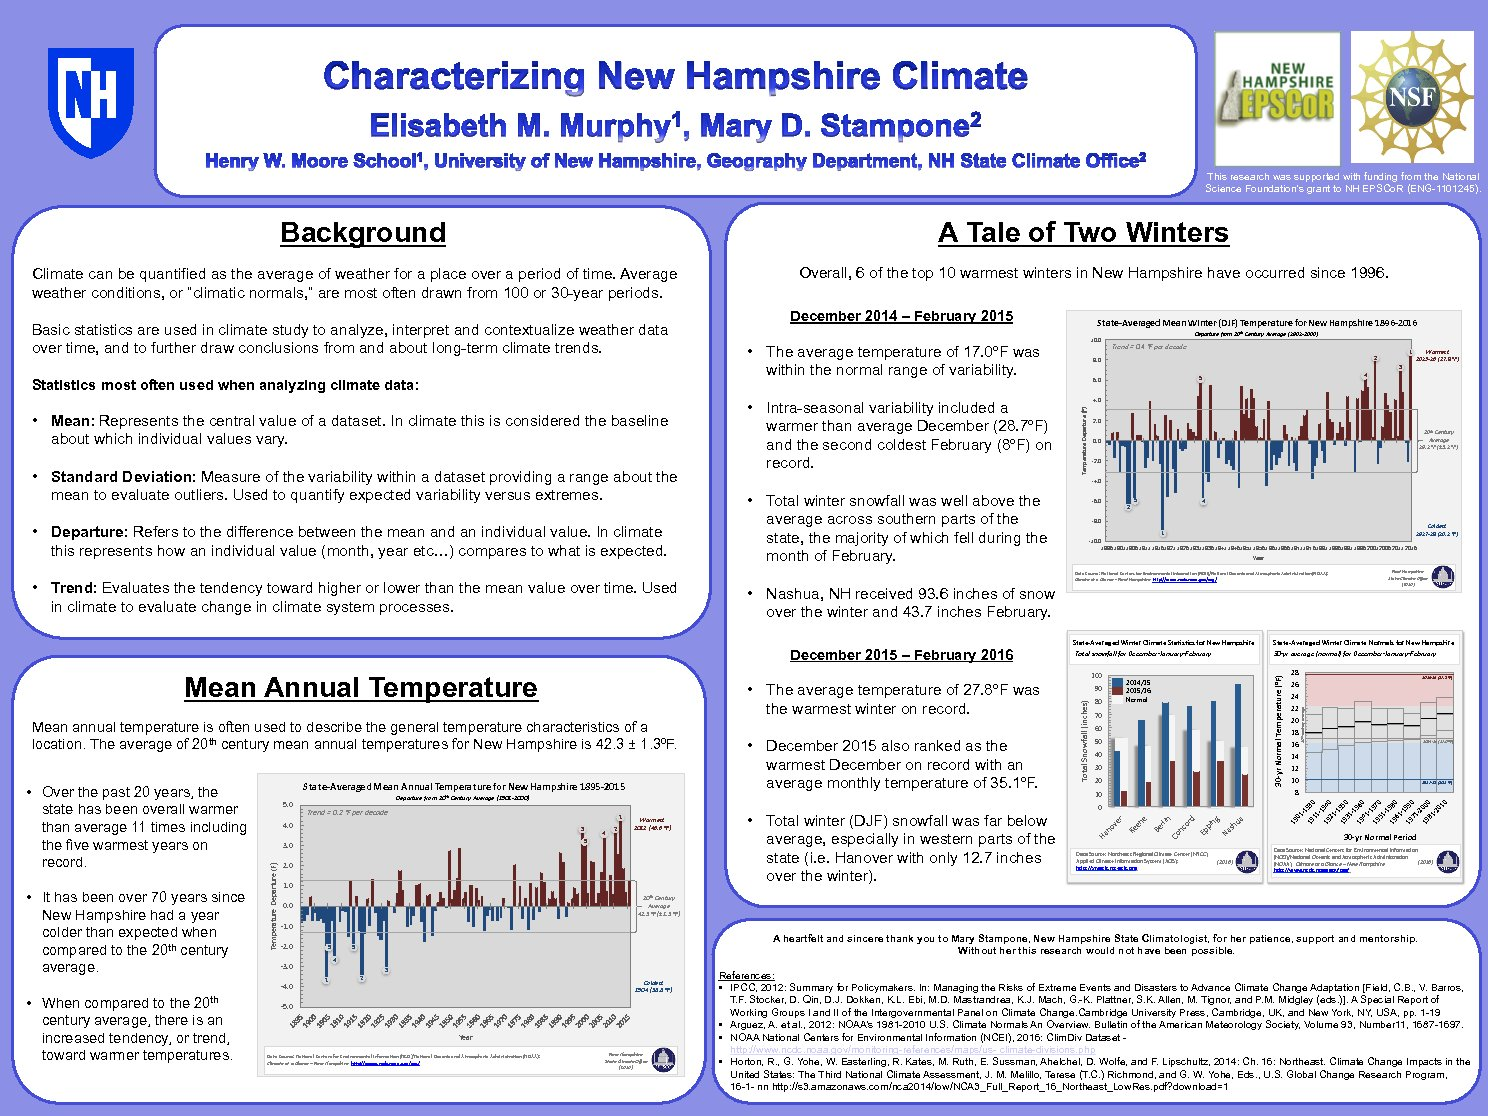 Characterizing New Hampshire Climate by emurphy